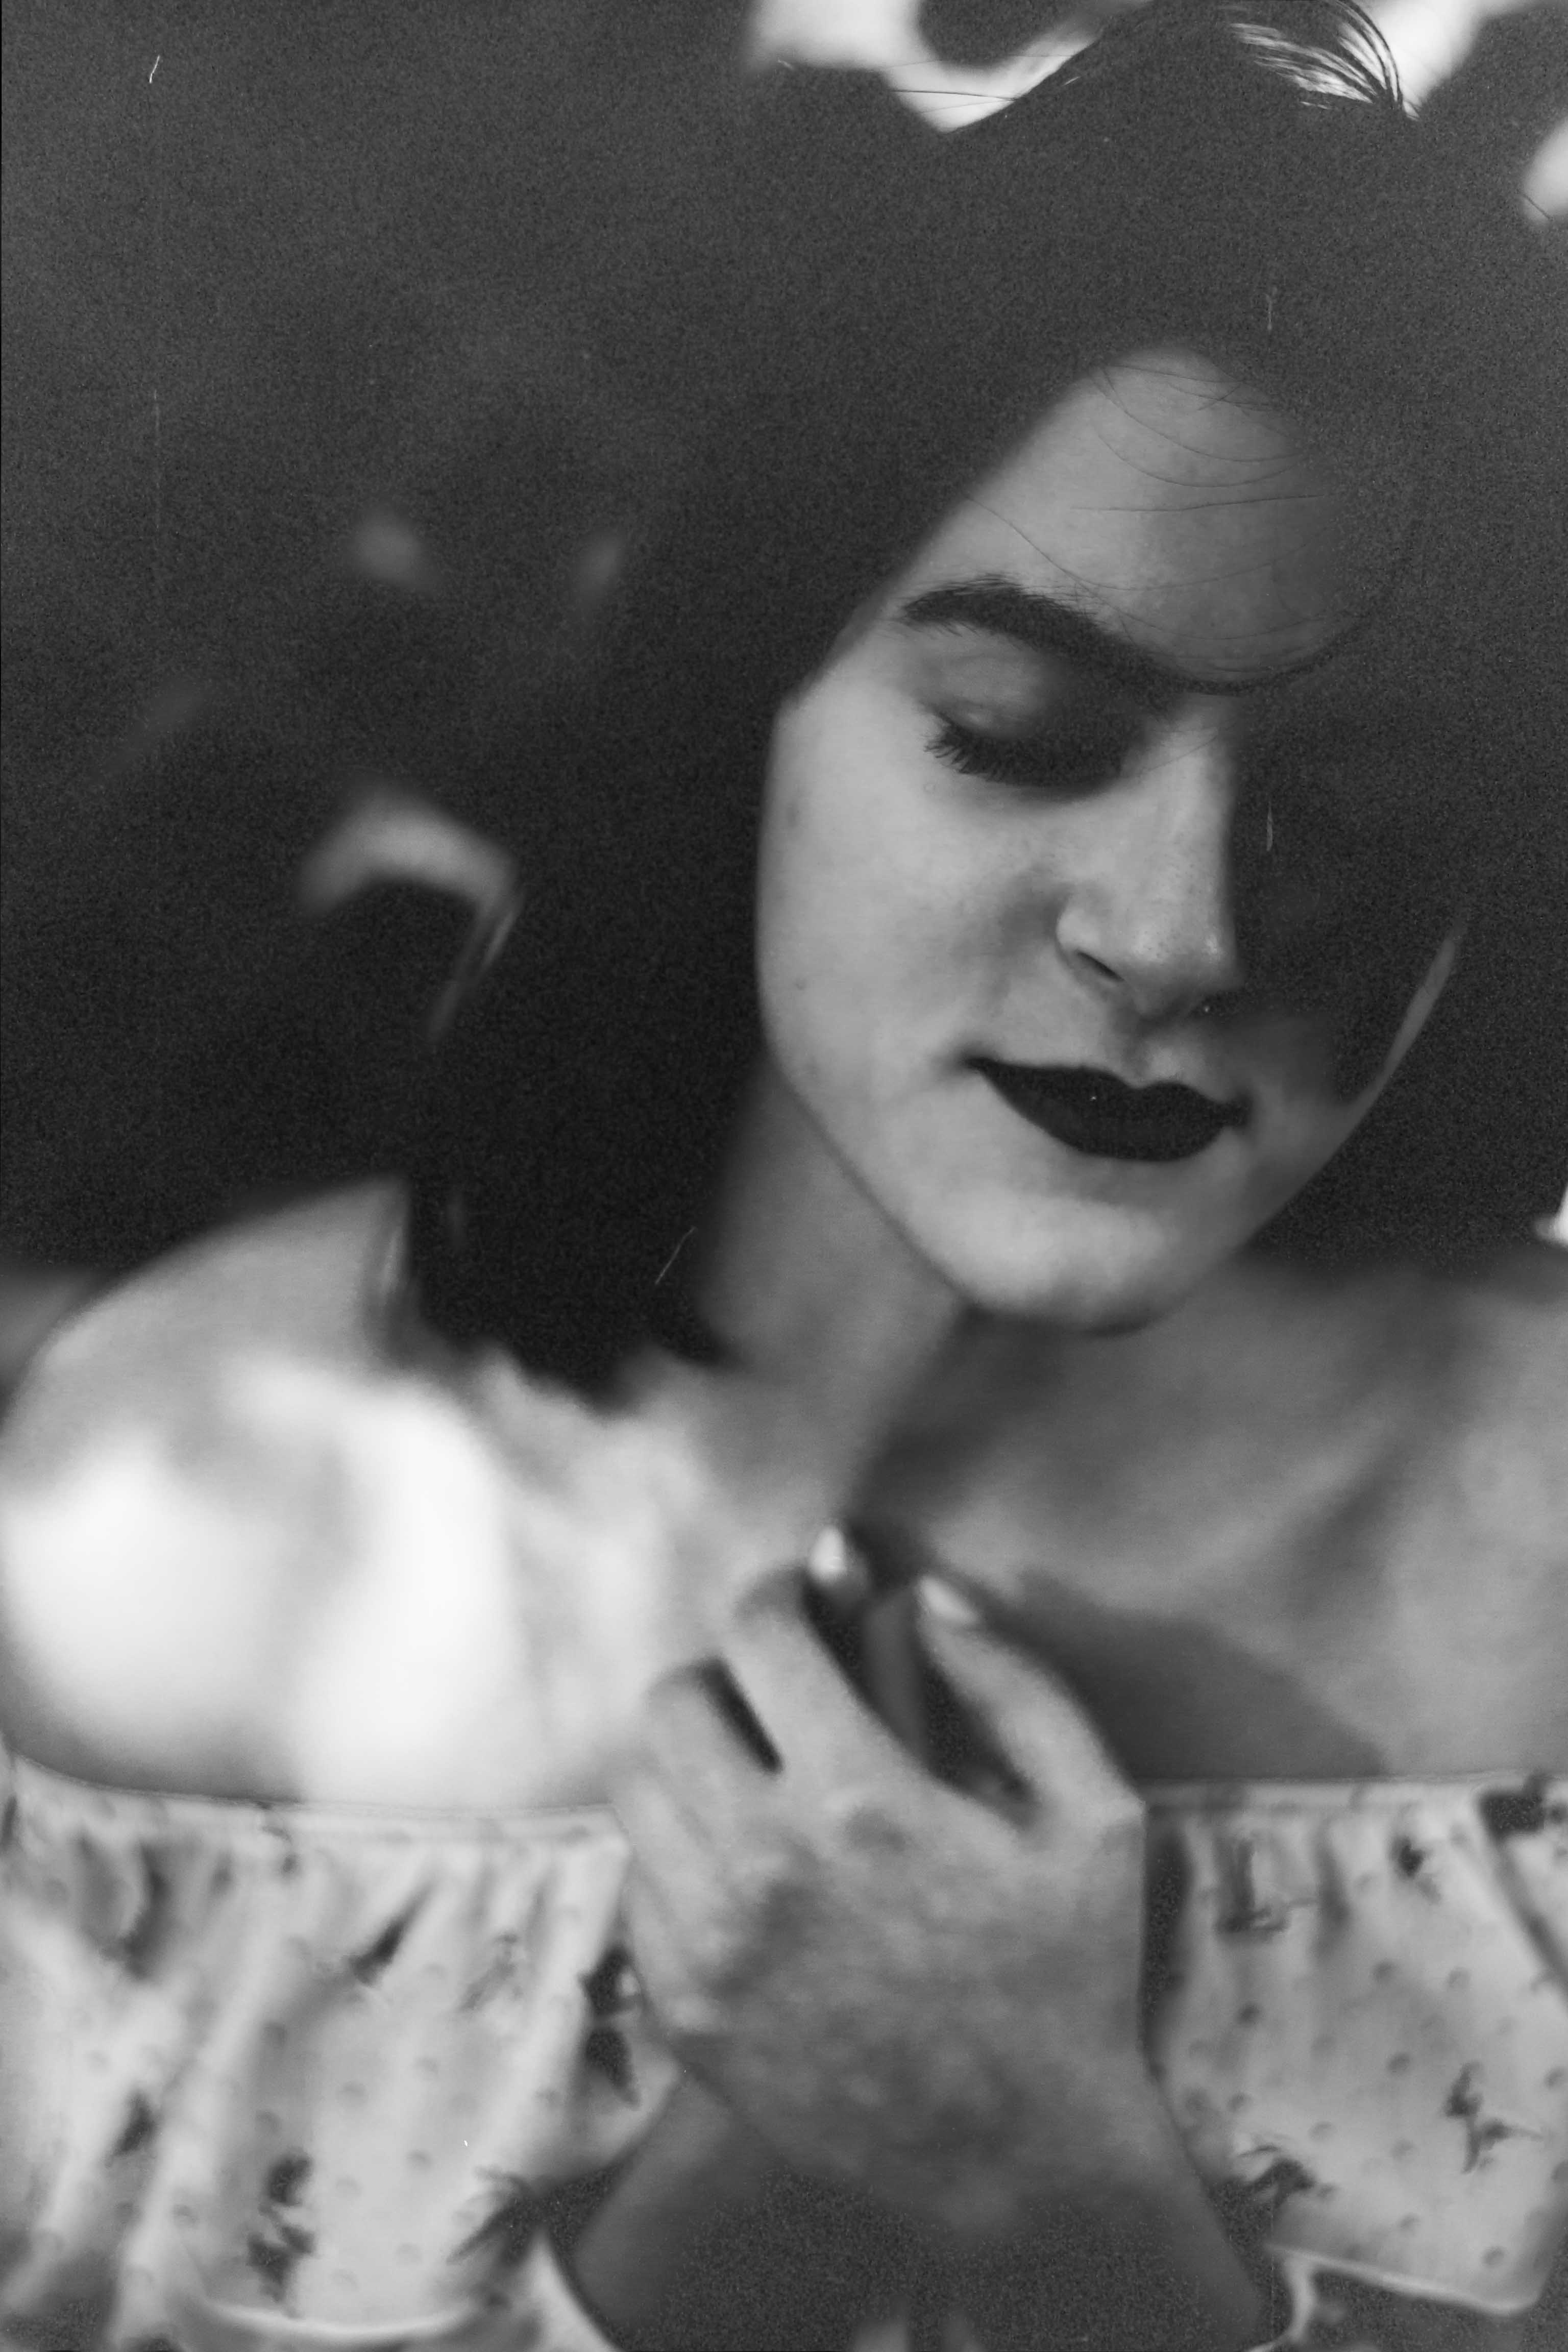 film photo b&w girl with closed eyes